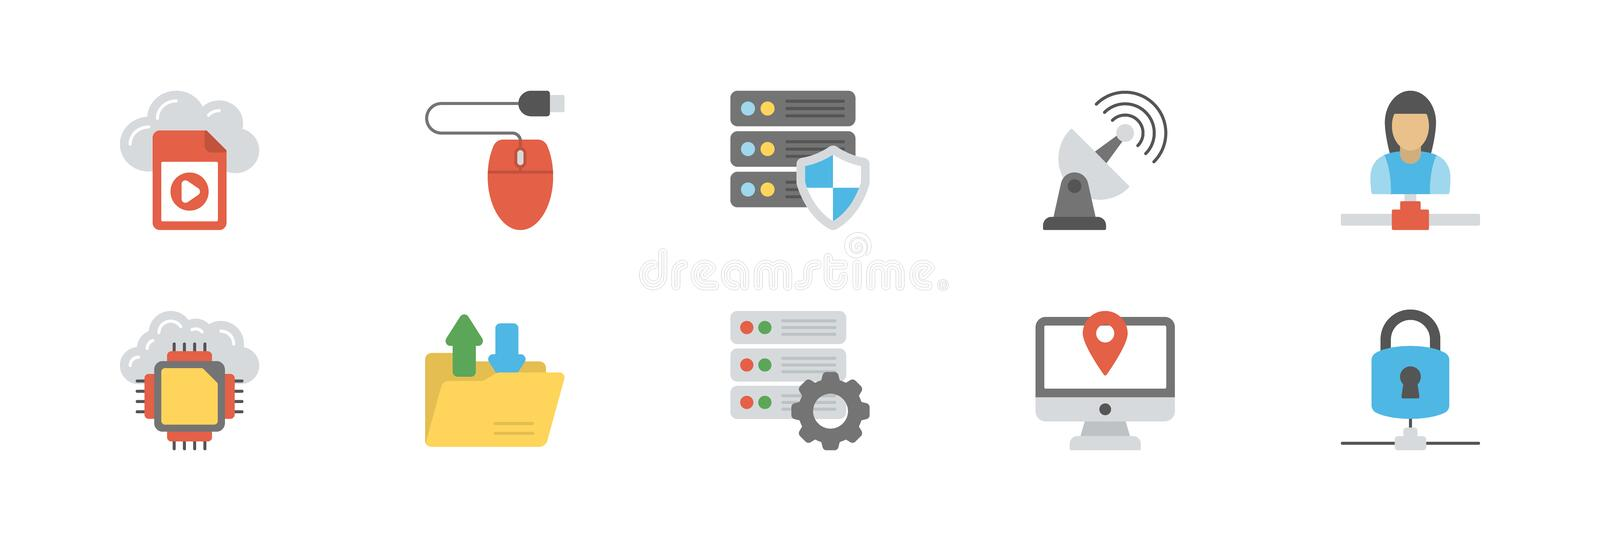 Network and Cloud Computing Icon Pack stock illustration